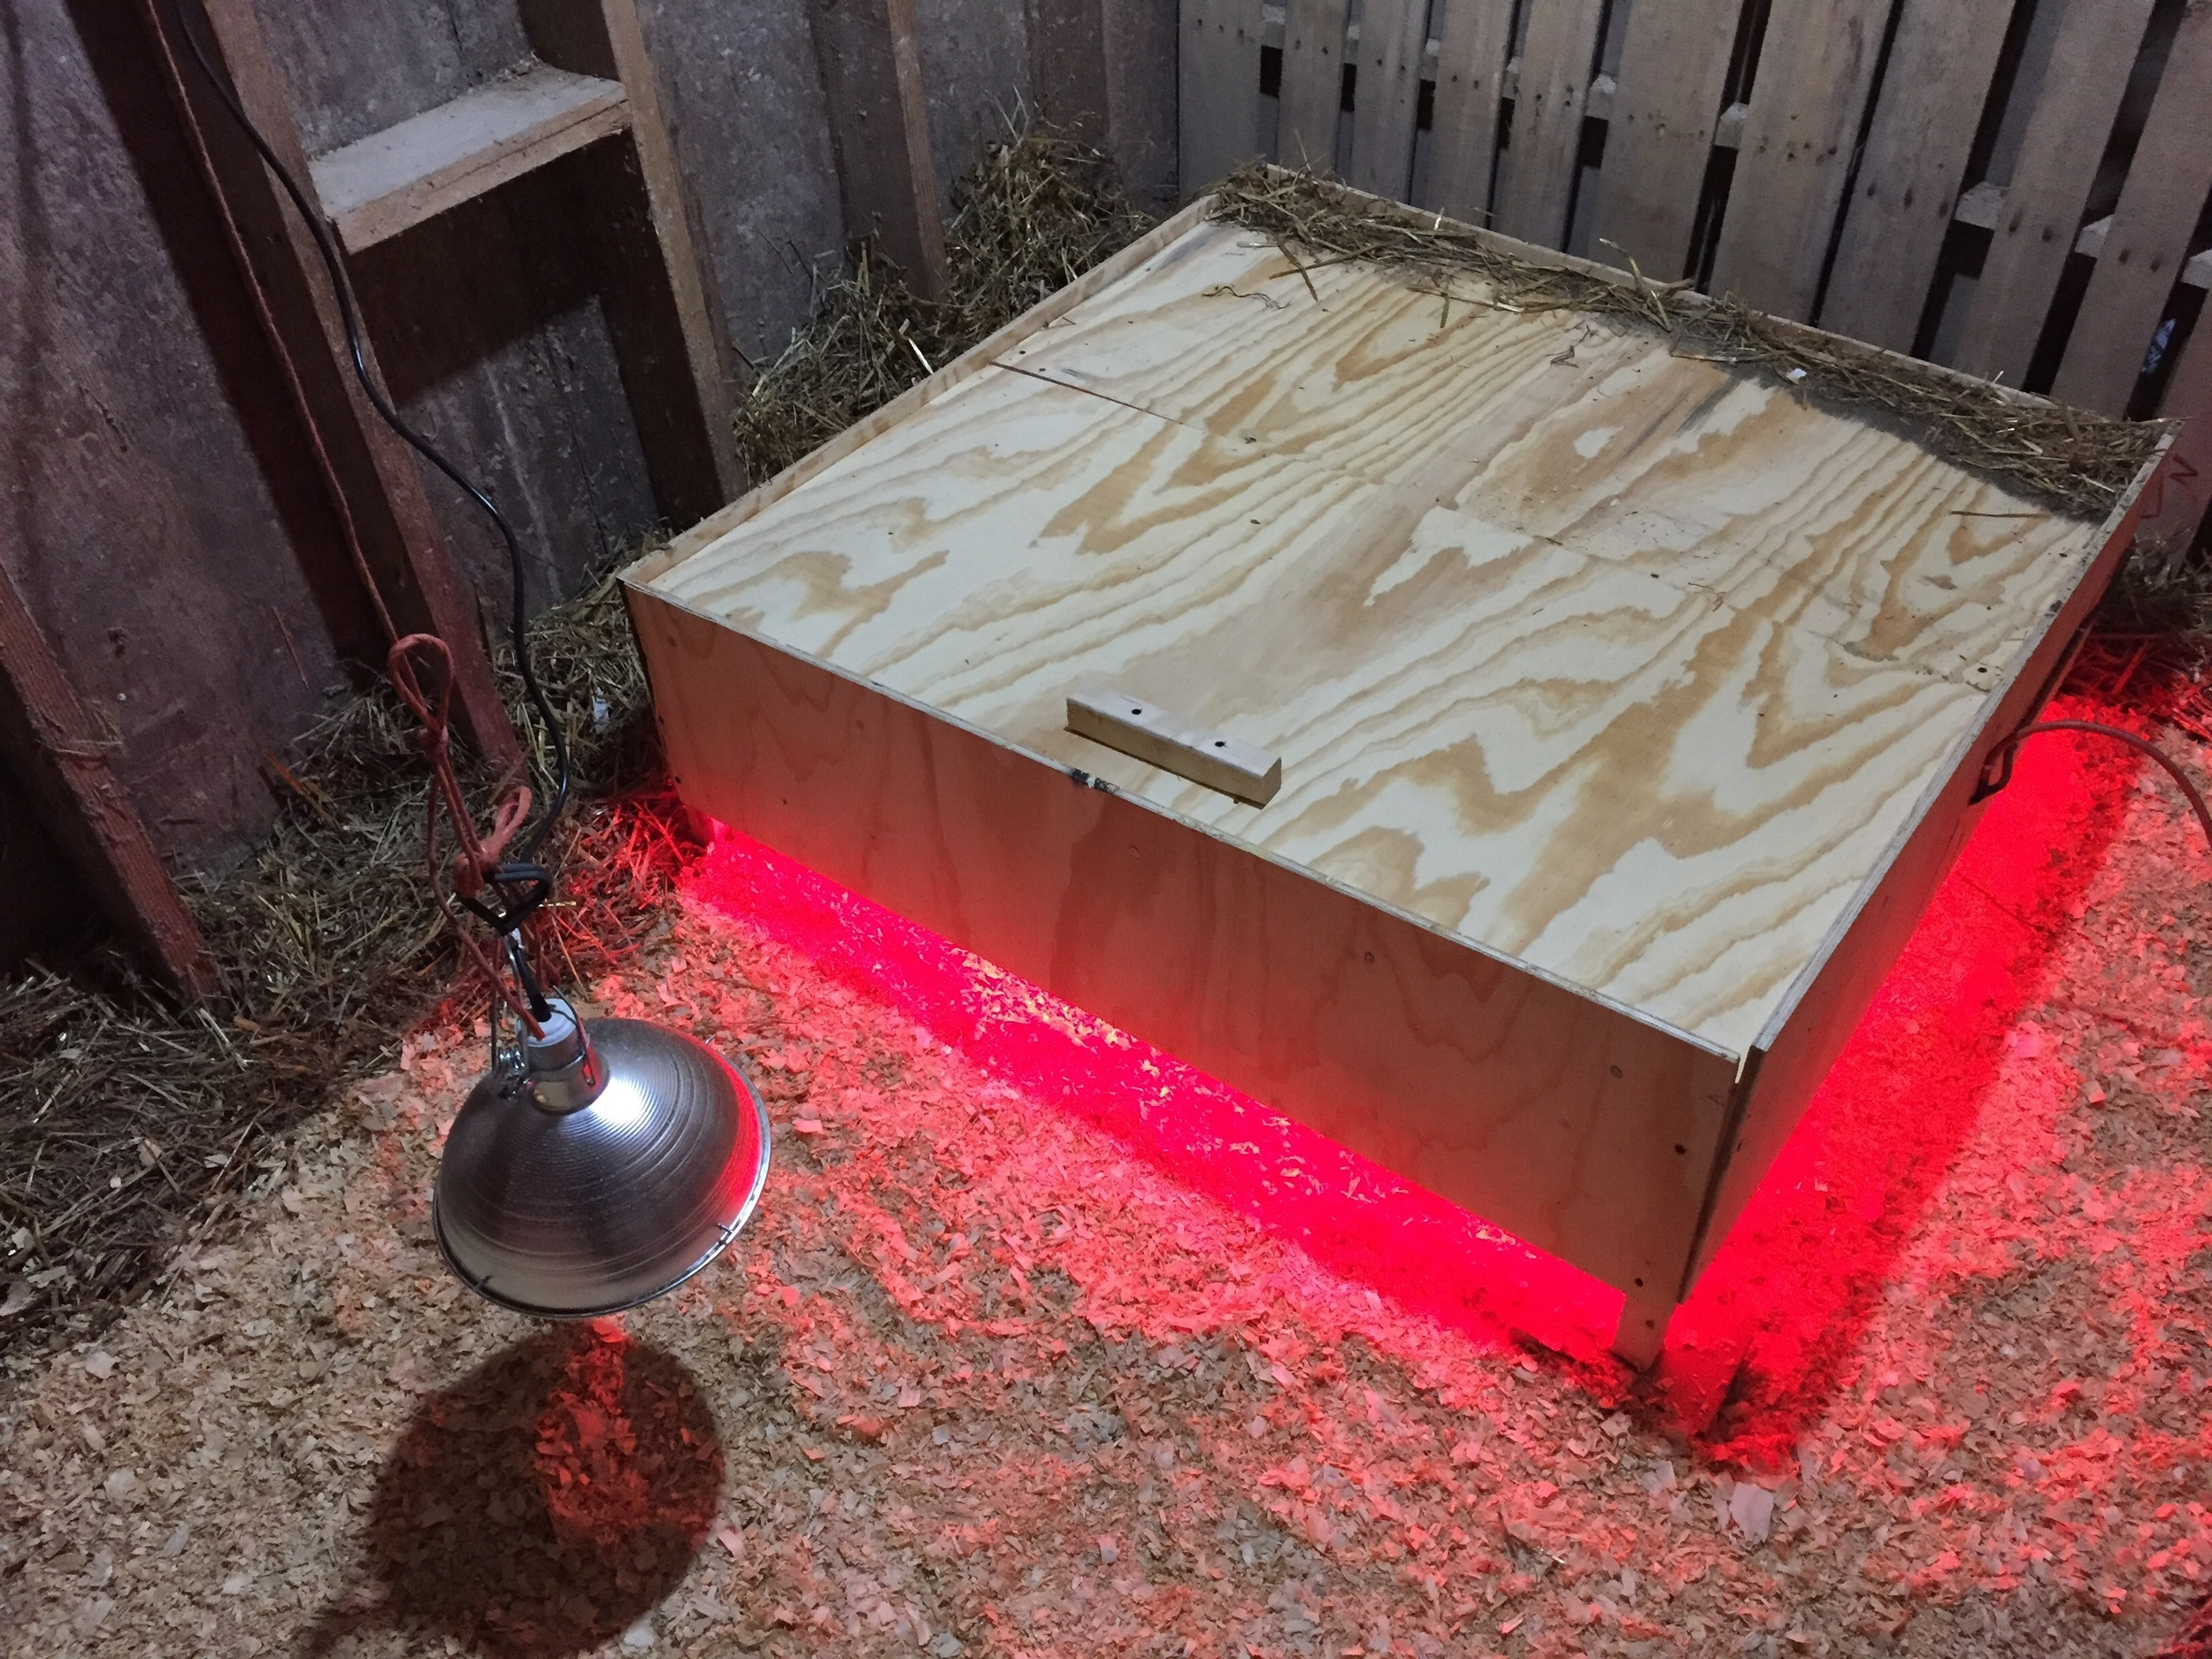 Made our Hoover Brooder to hold our first and future chicks. Easy to build simple design that should let the chicks self regulate their own temperature.